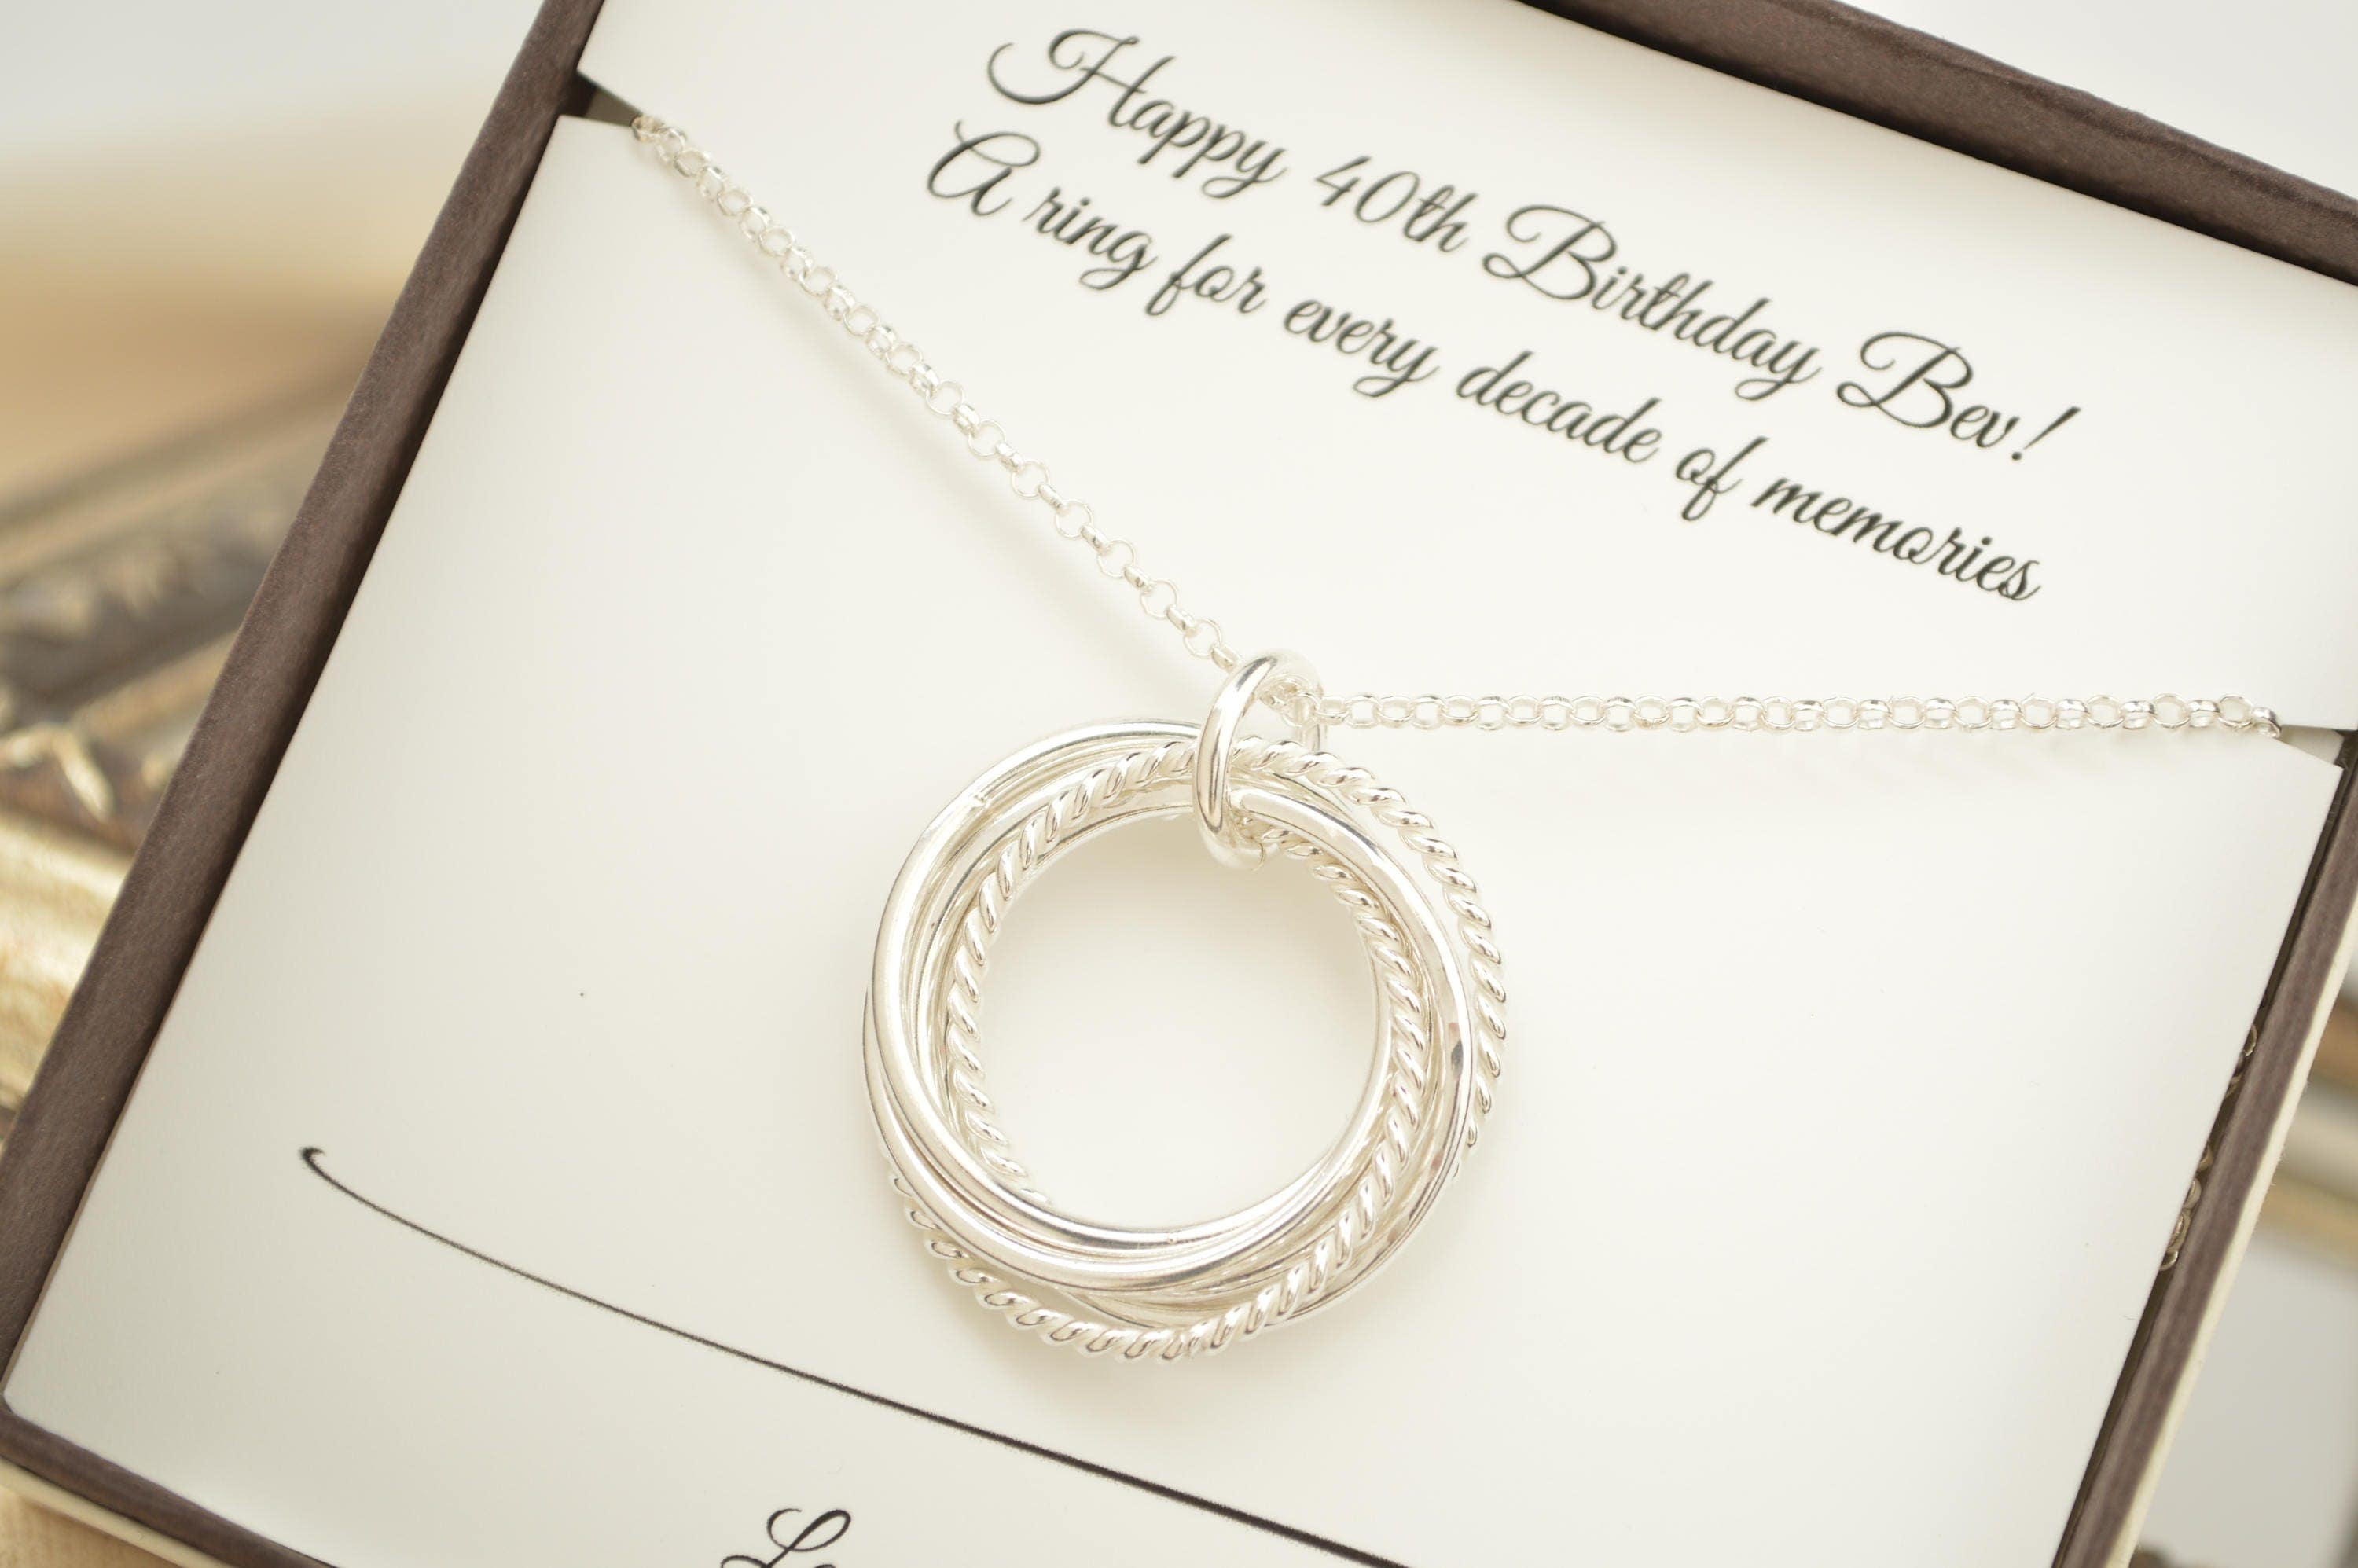 40th Wedding Anniversary Gifts For Friends: 40th Birthday Gift For Women, 4 Interlocking Rings